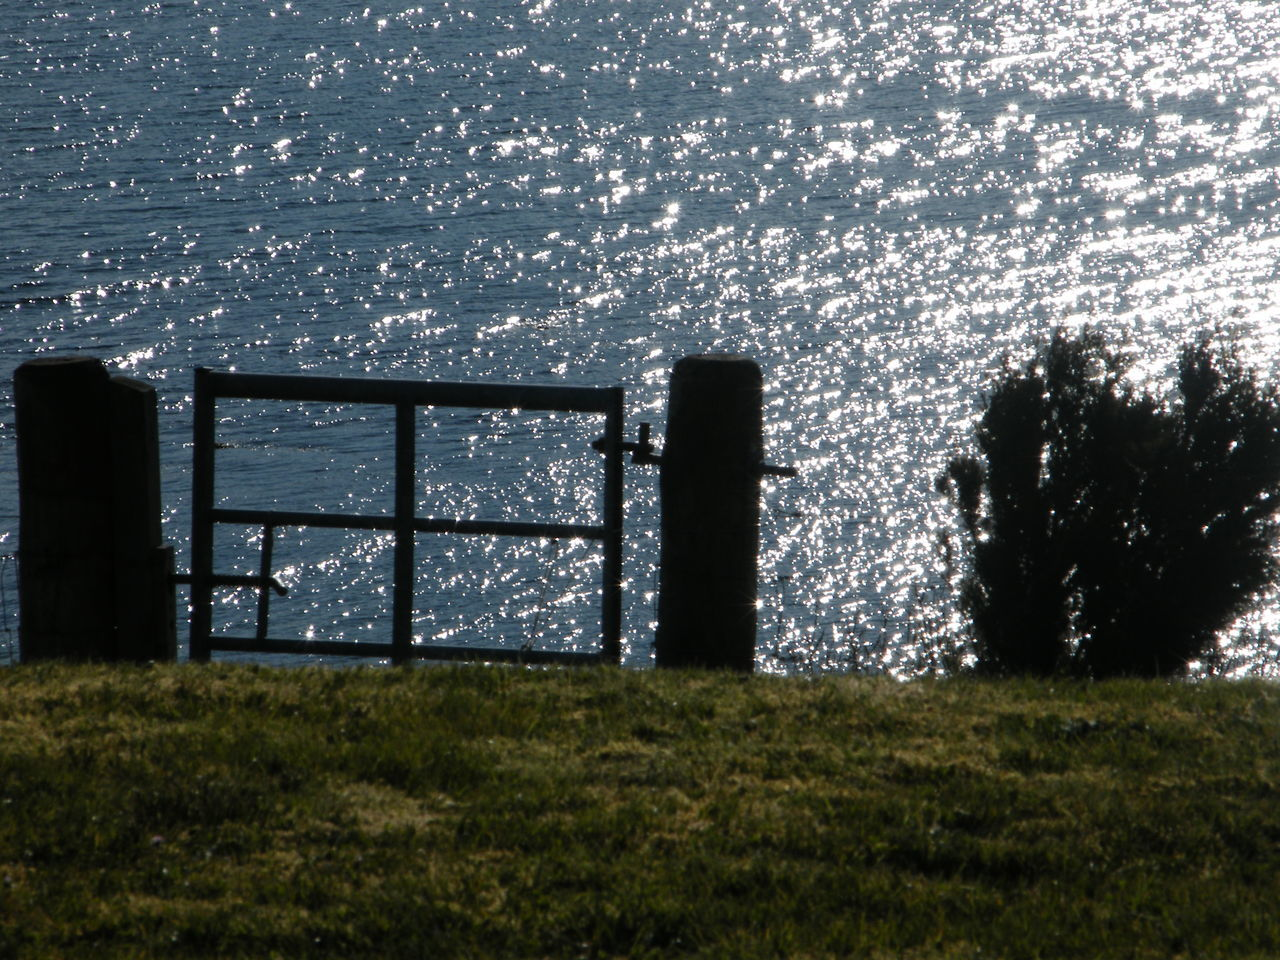 An Opening Beginning Of A Journey Caroy Jetty Close-up Day Footpath Garden Gate Grass Isle Of Skye Loch Caroy Nature No People Outdoors Scotland Sky Sun On The Sea Sun On Water  Water Waves